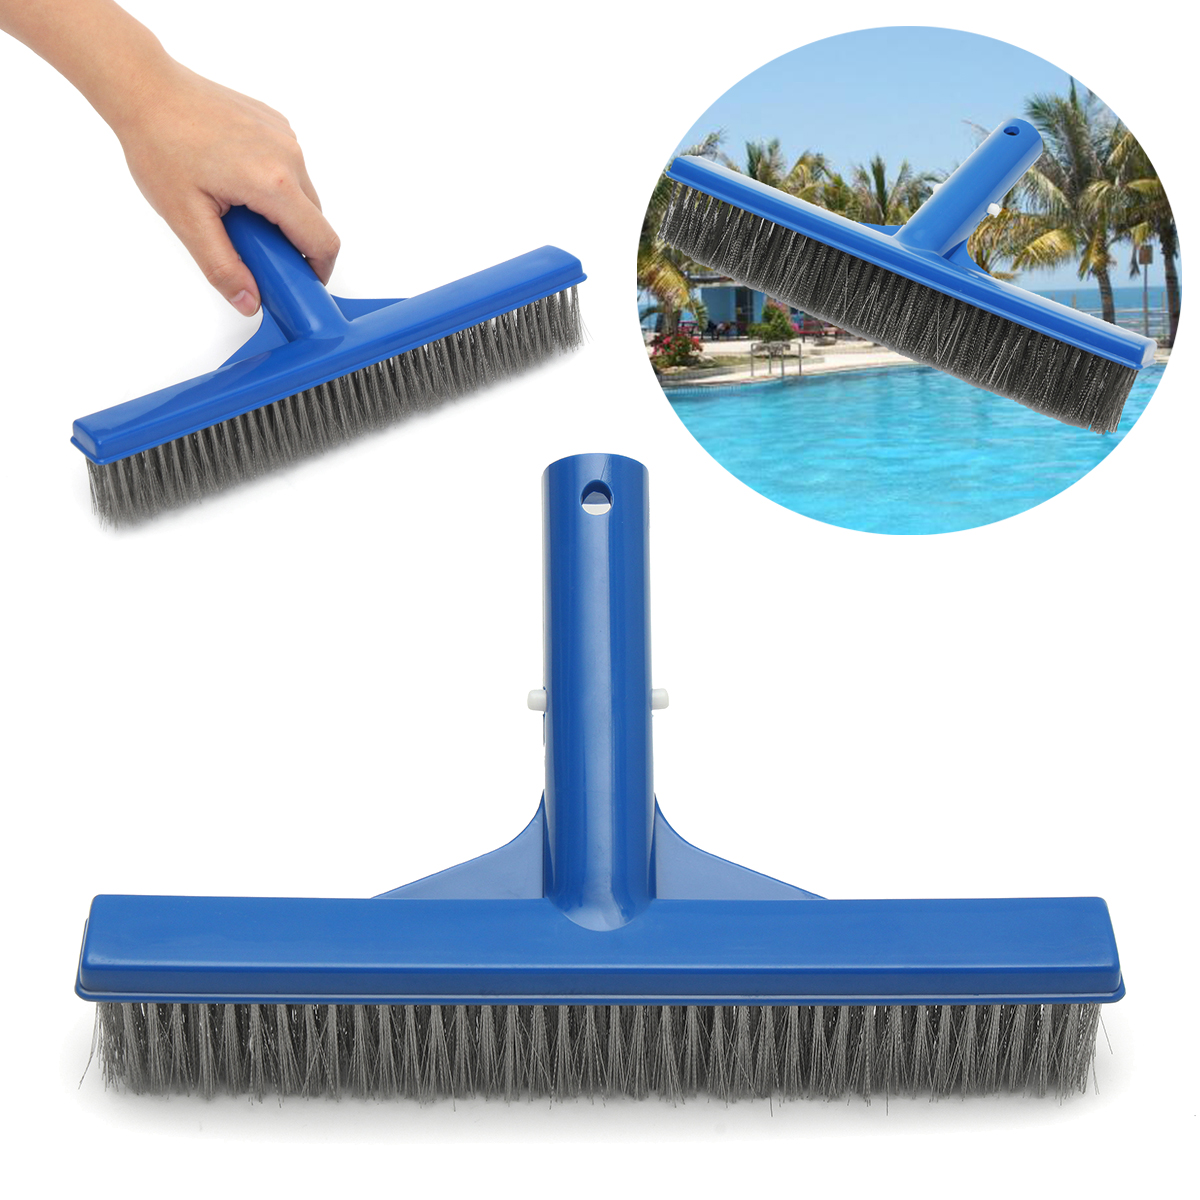 Professional 10 Stainless Steel Swimming Pool SPA HOT TUB Pond Algae Wall Brush Pool Cleaning Brush Pool Cleaning Equipment